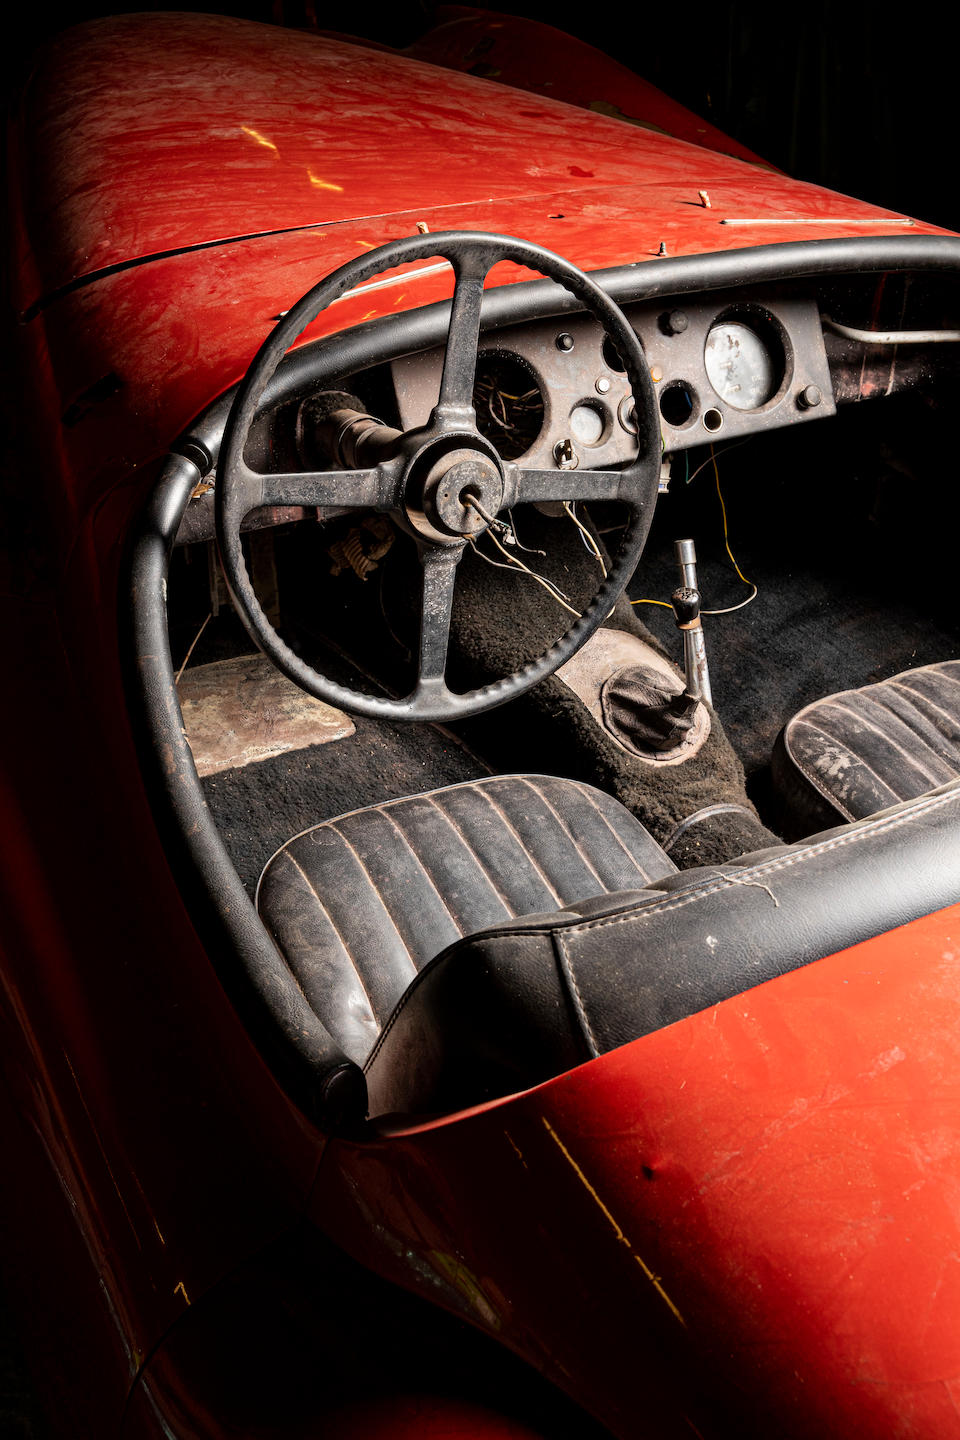 The Property of a Gentleman and Racing Enthusiast,1952 Jaguar XK120 Roadster Project  Chassis no. 673053